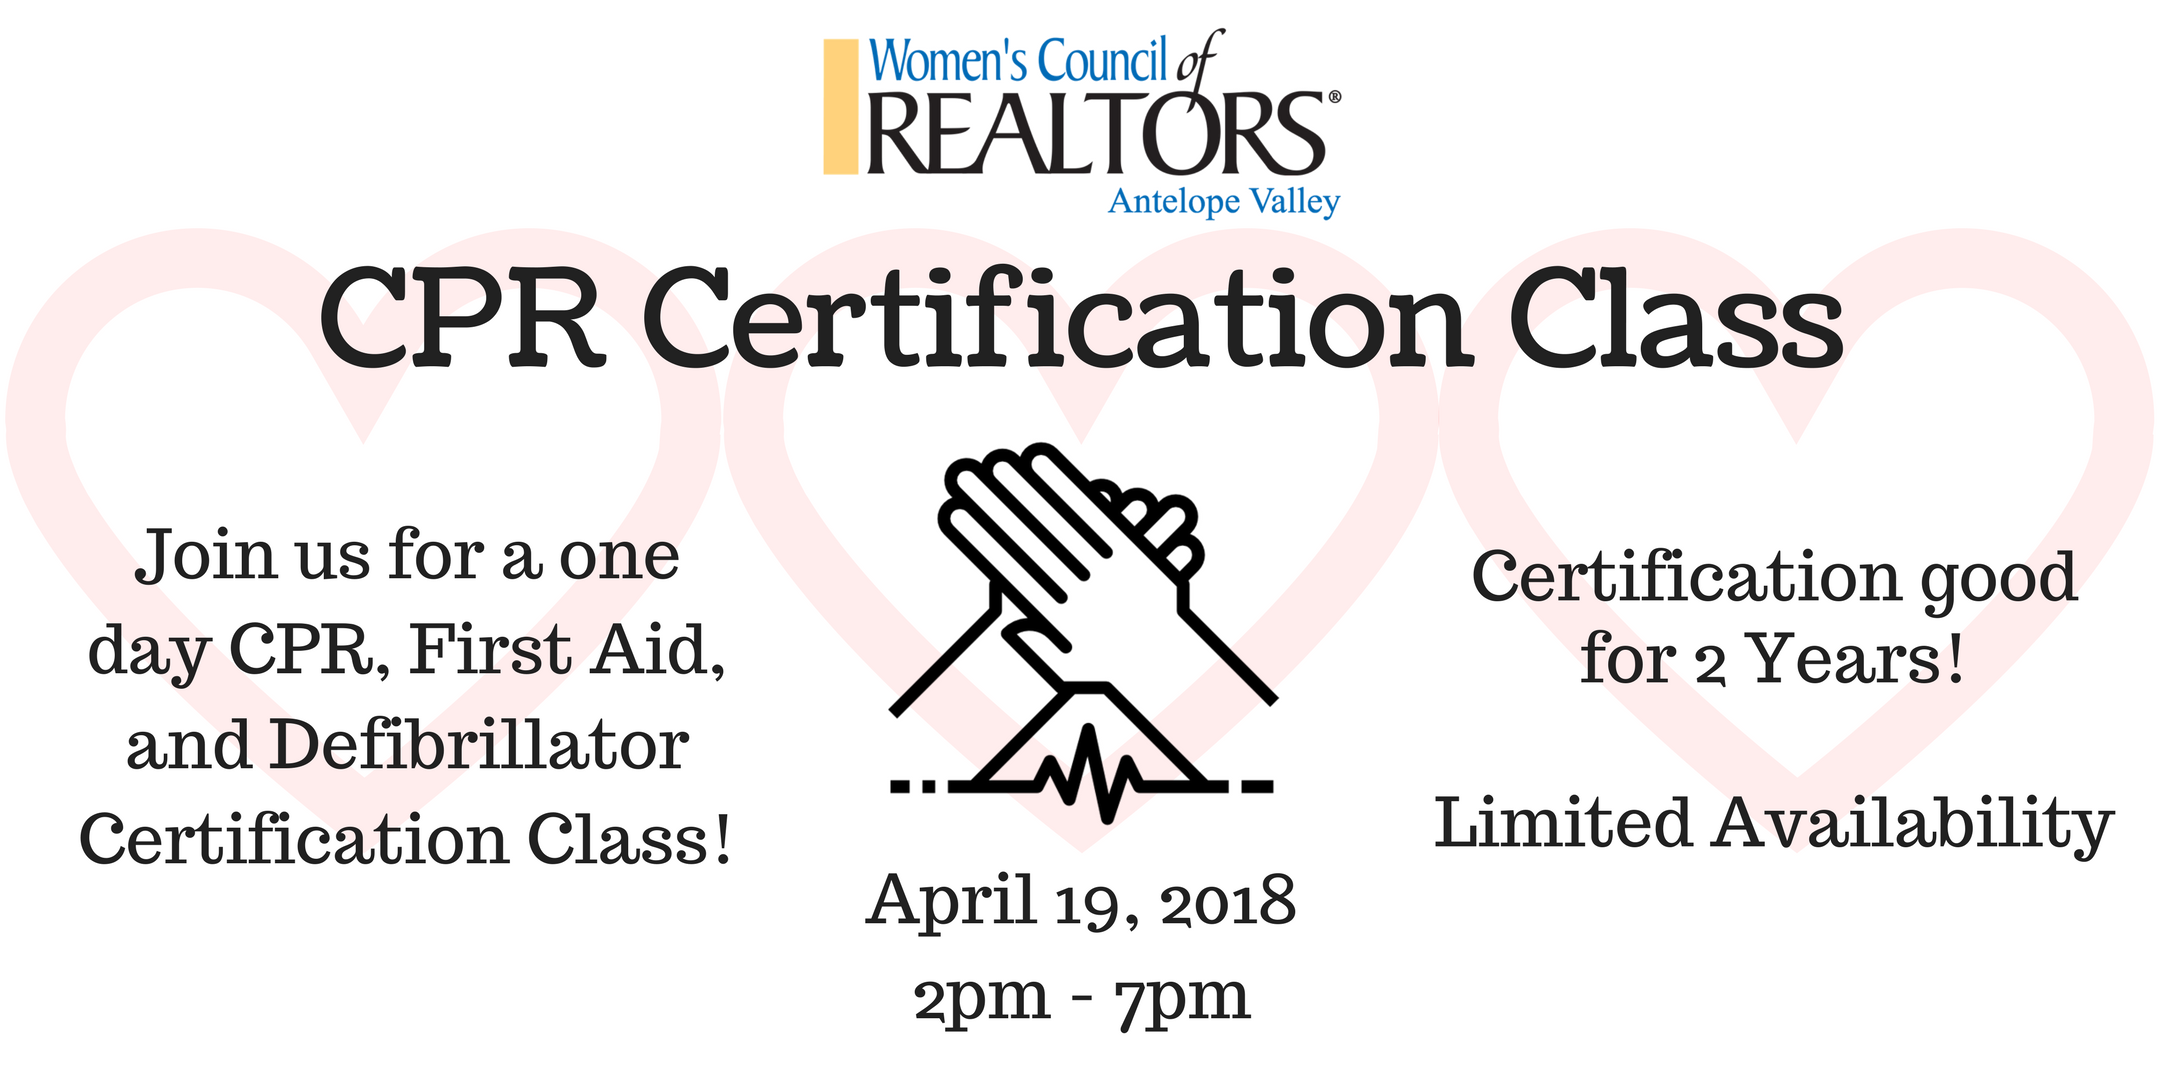 Cpr Certification Class 19 Apr 2018